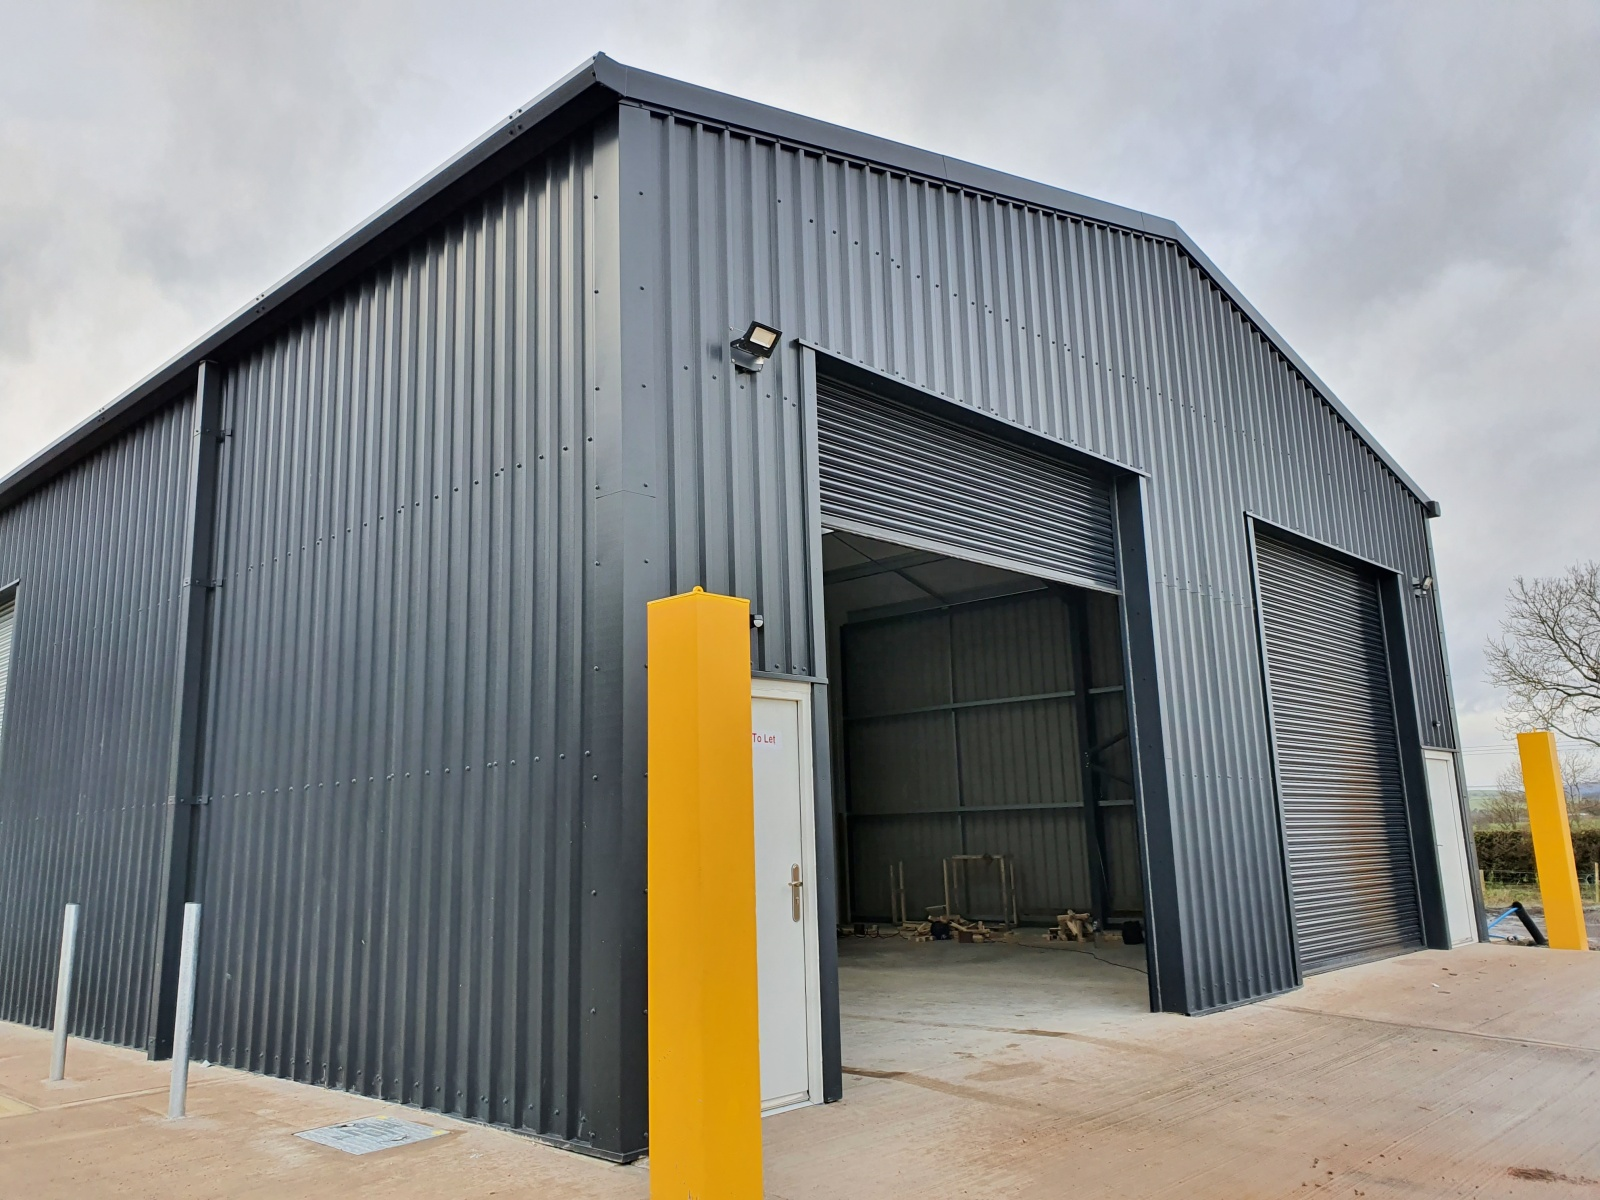 Unit 16f, Malehurst Industrial Estate, Minsterley, Shropshire